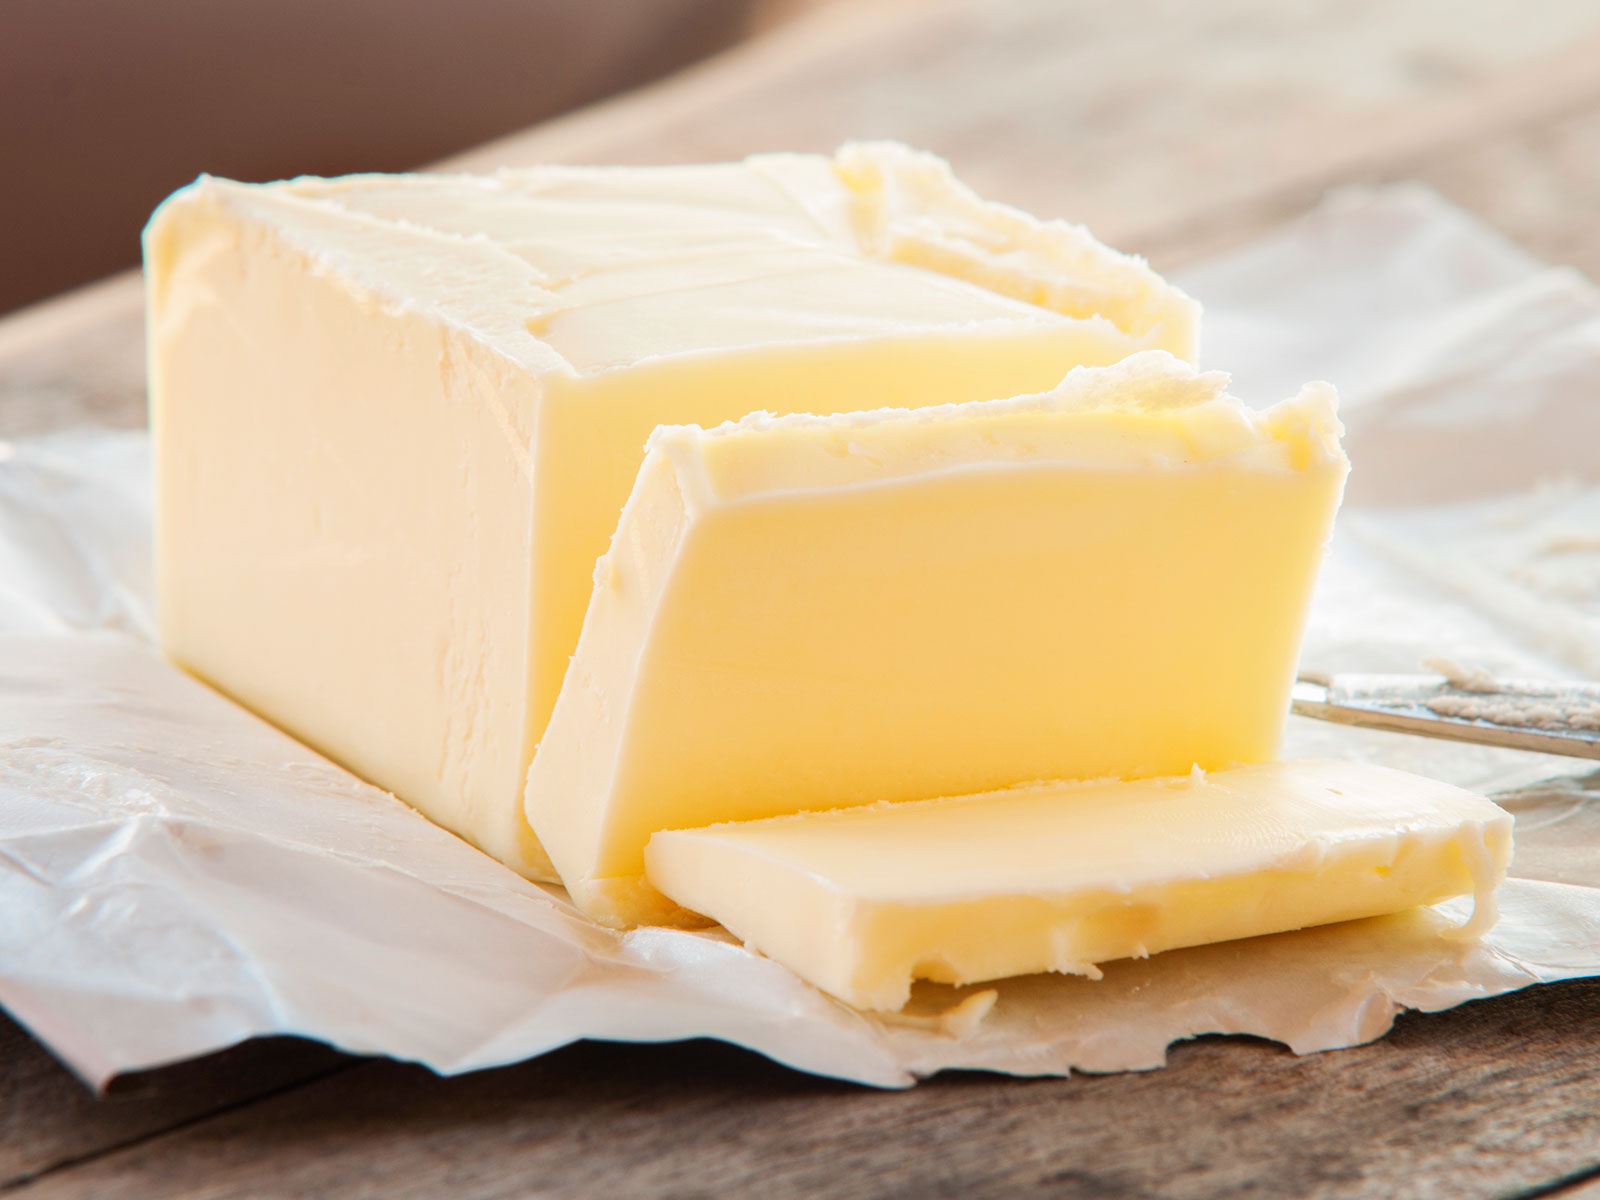 France Is Battling a Butter Shortage and People Are Freaking Out